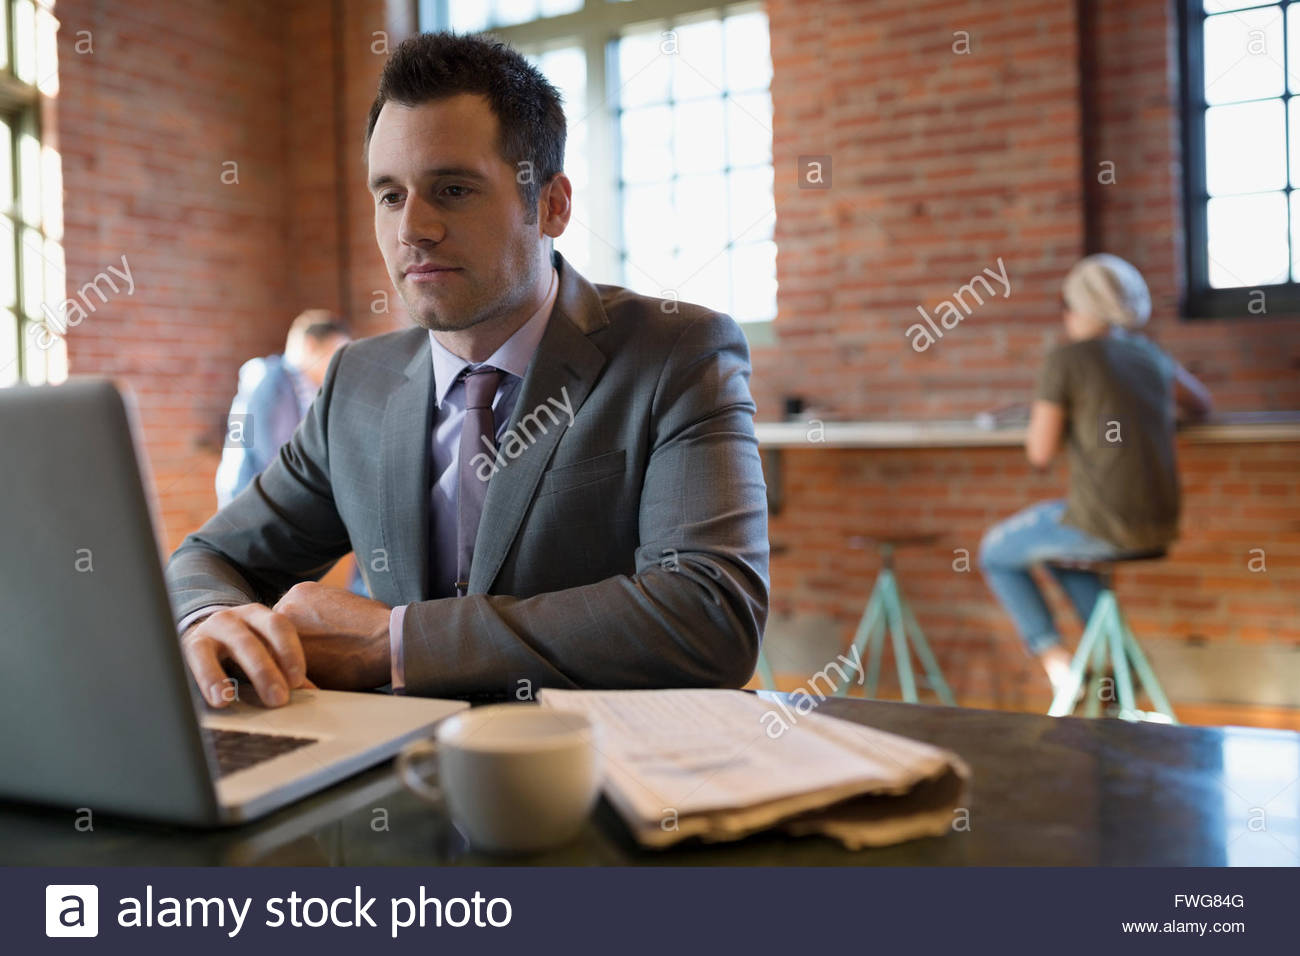 Businessman using laptop in coffee shop - Stock Image